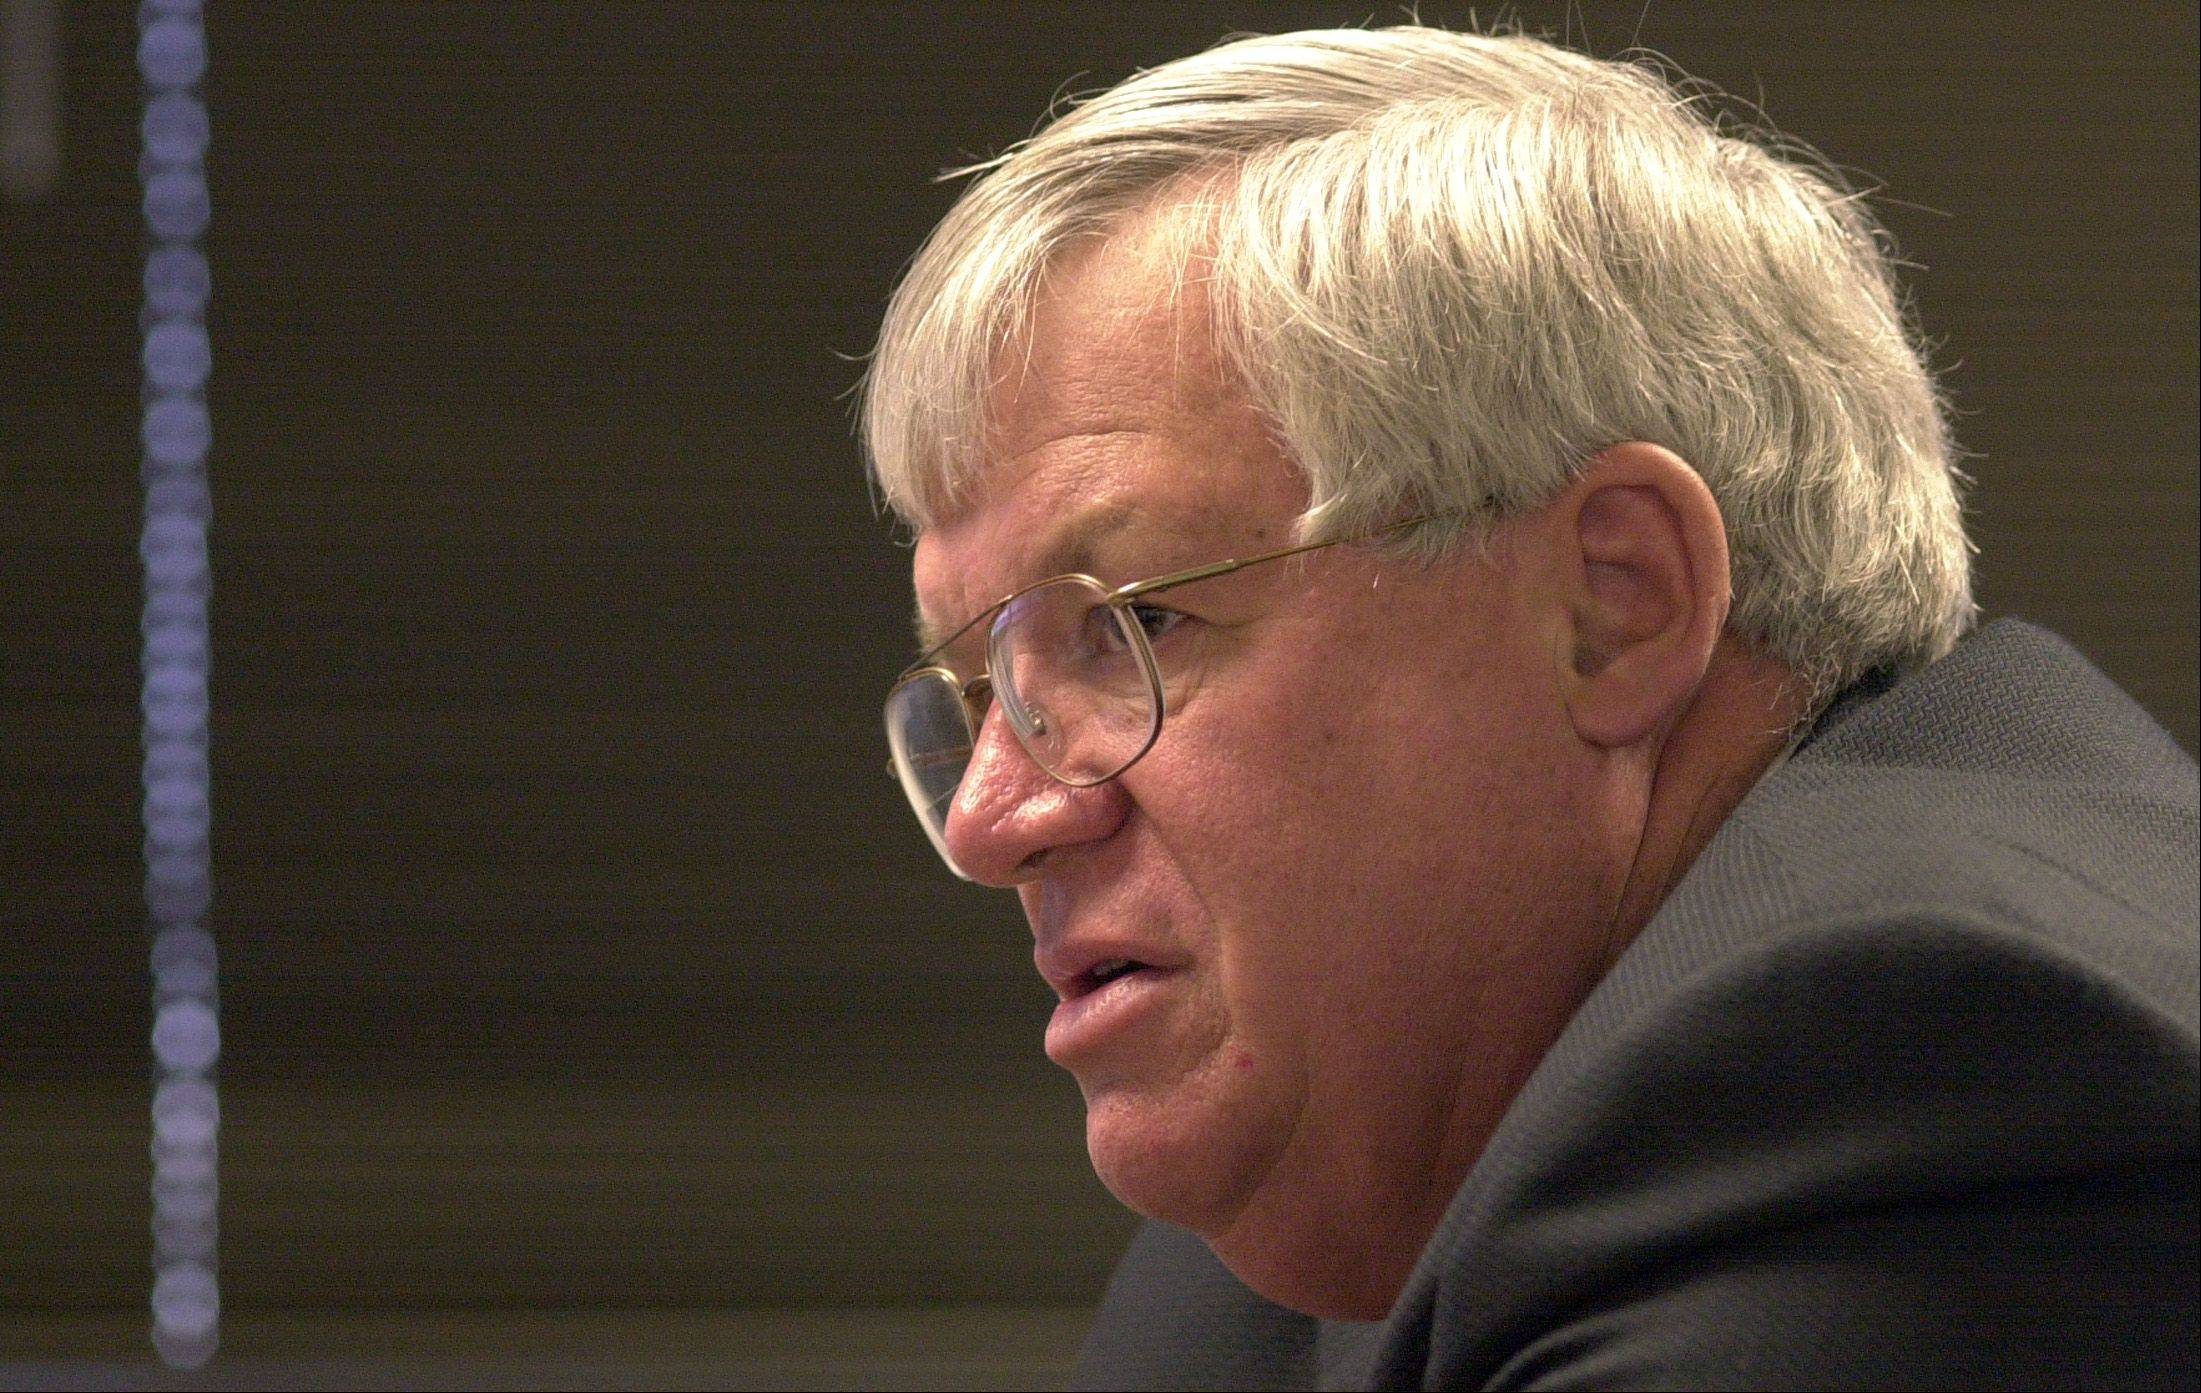 Former speaker of the House Dennis Hastert will be in Wheaton Thursday for a panel discussion on the fiscal imbalance facing the U.S. government.